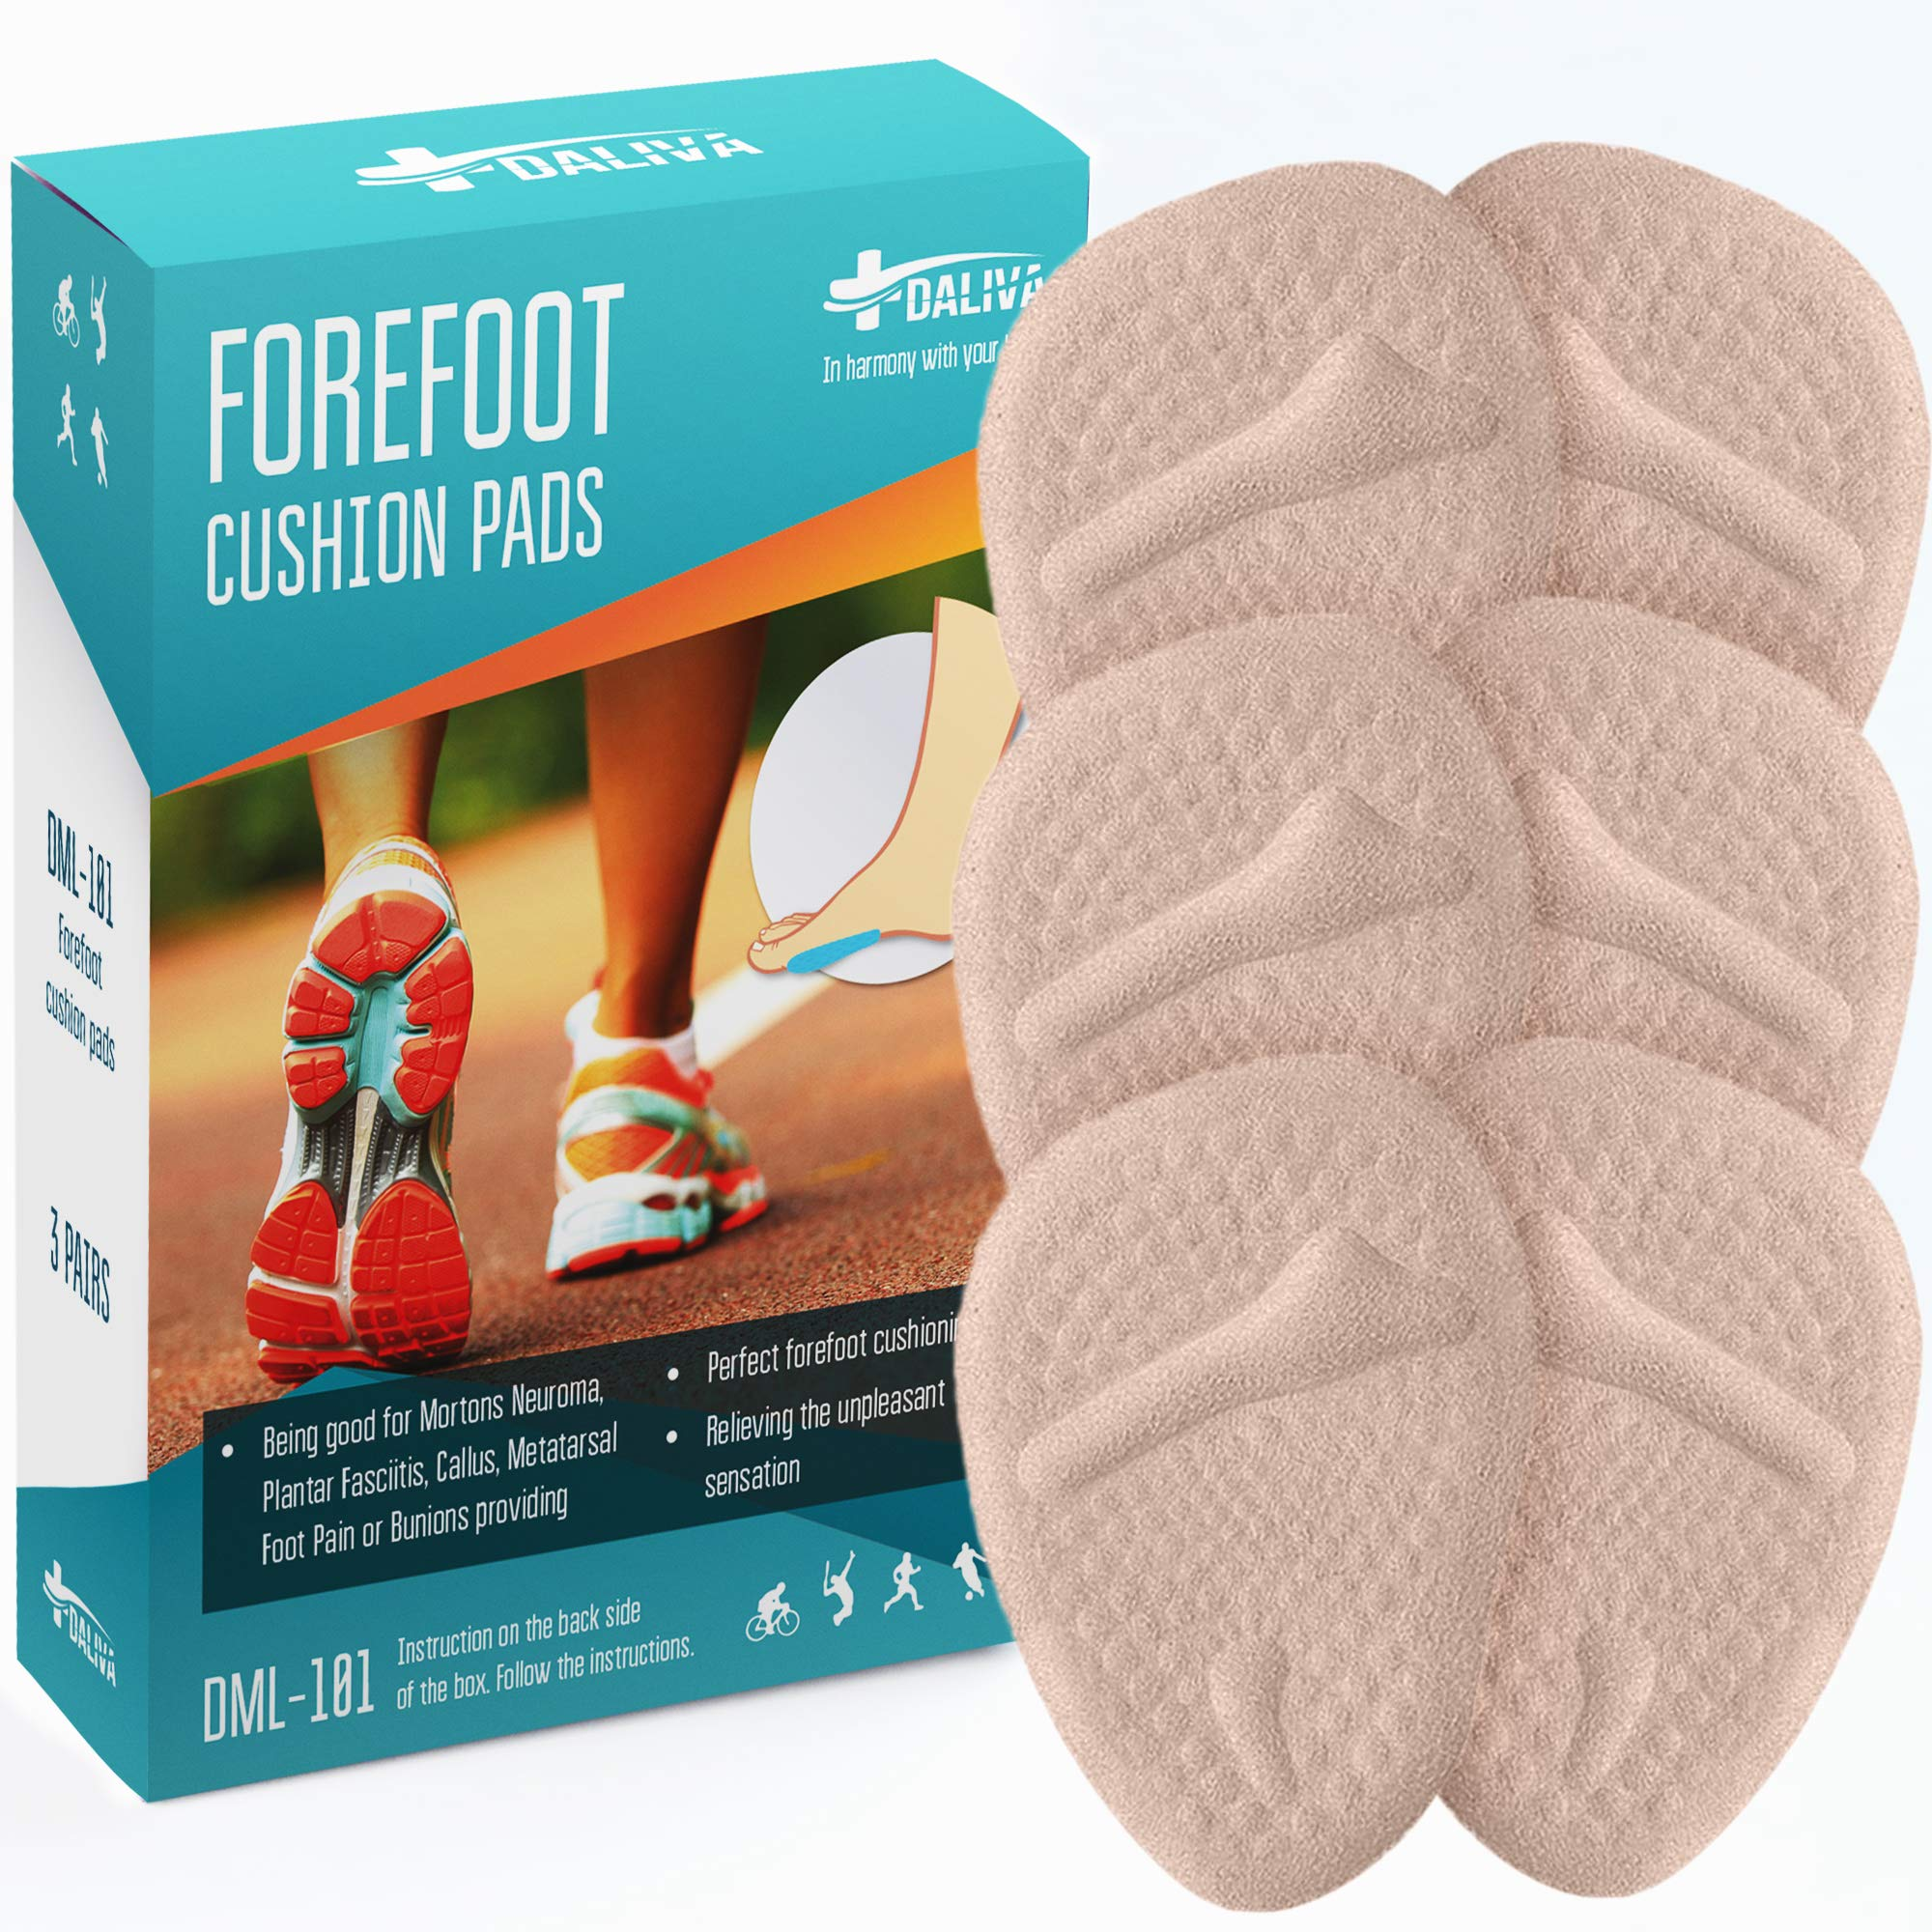 Metatarsal Pads Ball of Foot Cushions (6PCS) - Forefoot Cushions Shoe Inserts for Man & Women - Insoles for Ball of Foot Pain - Pain Relief for Metatarsalgia Morton Neuroma Calluses by DALIVA